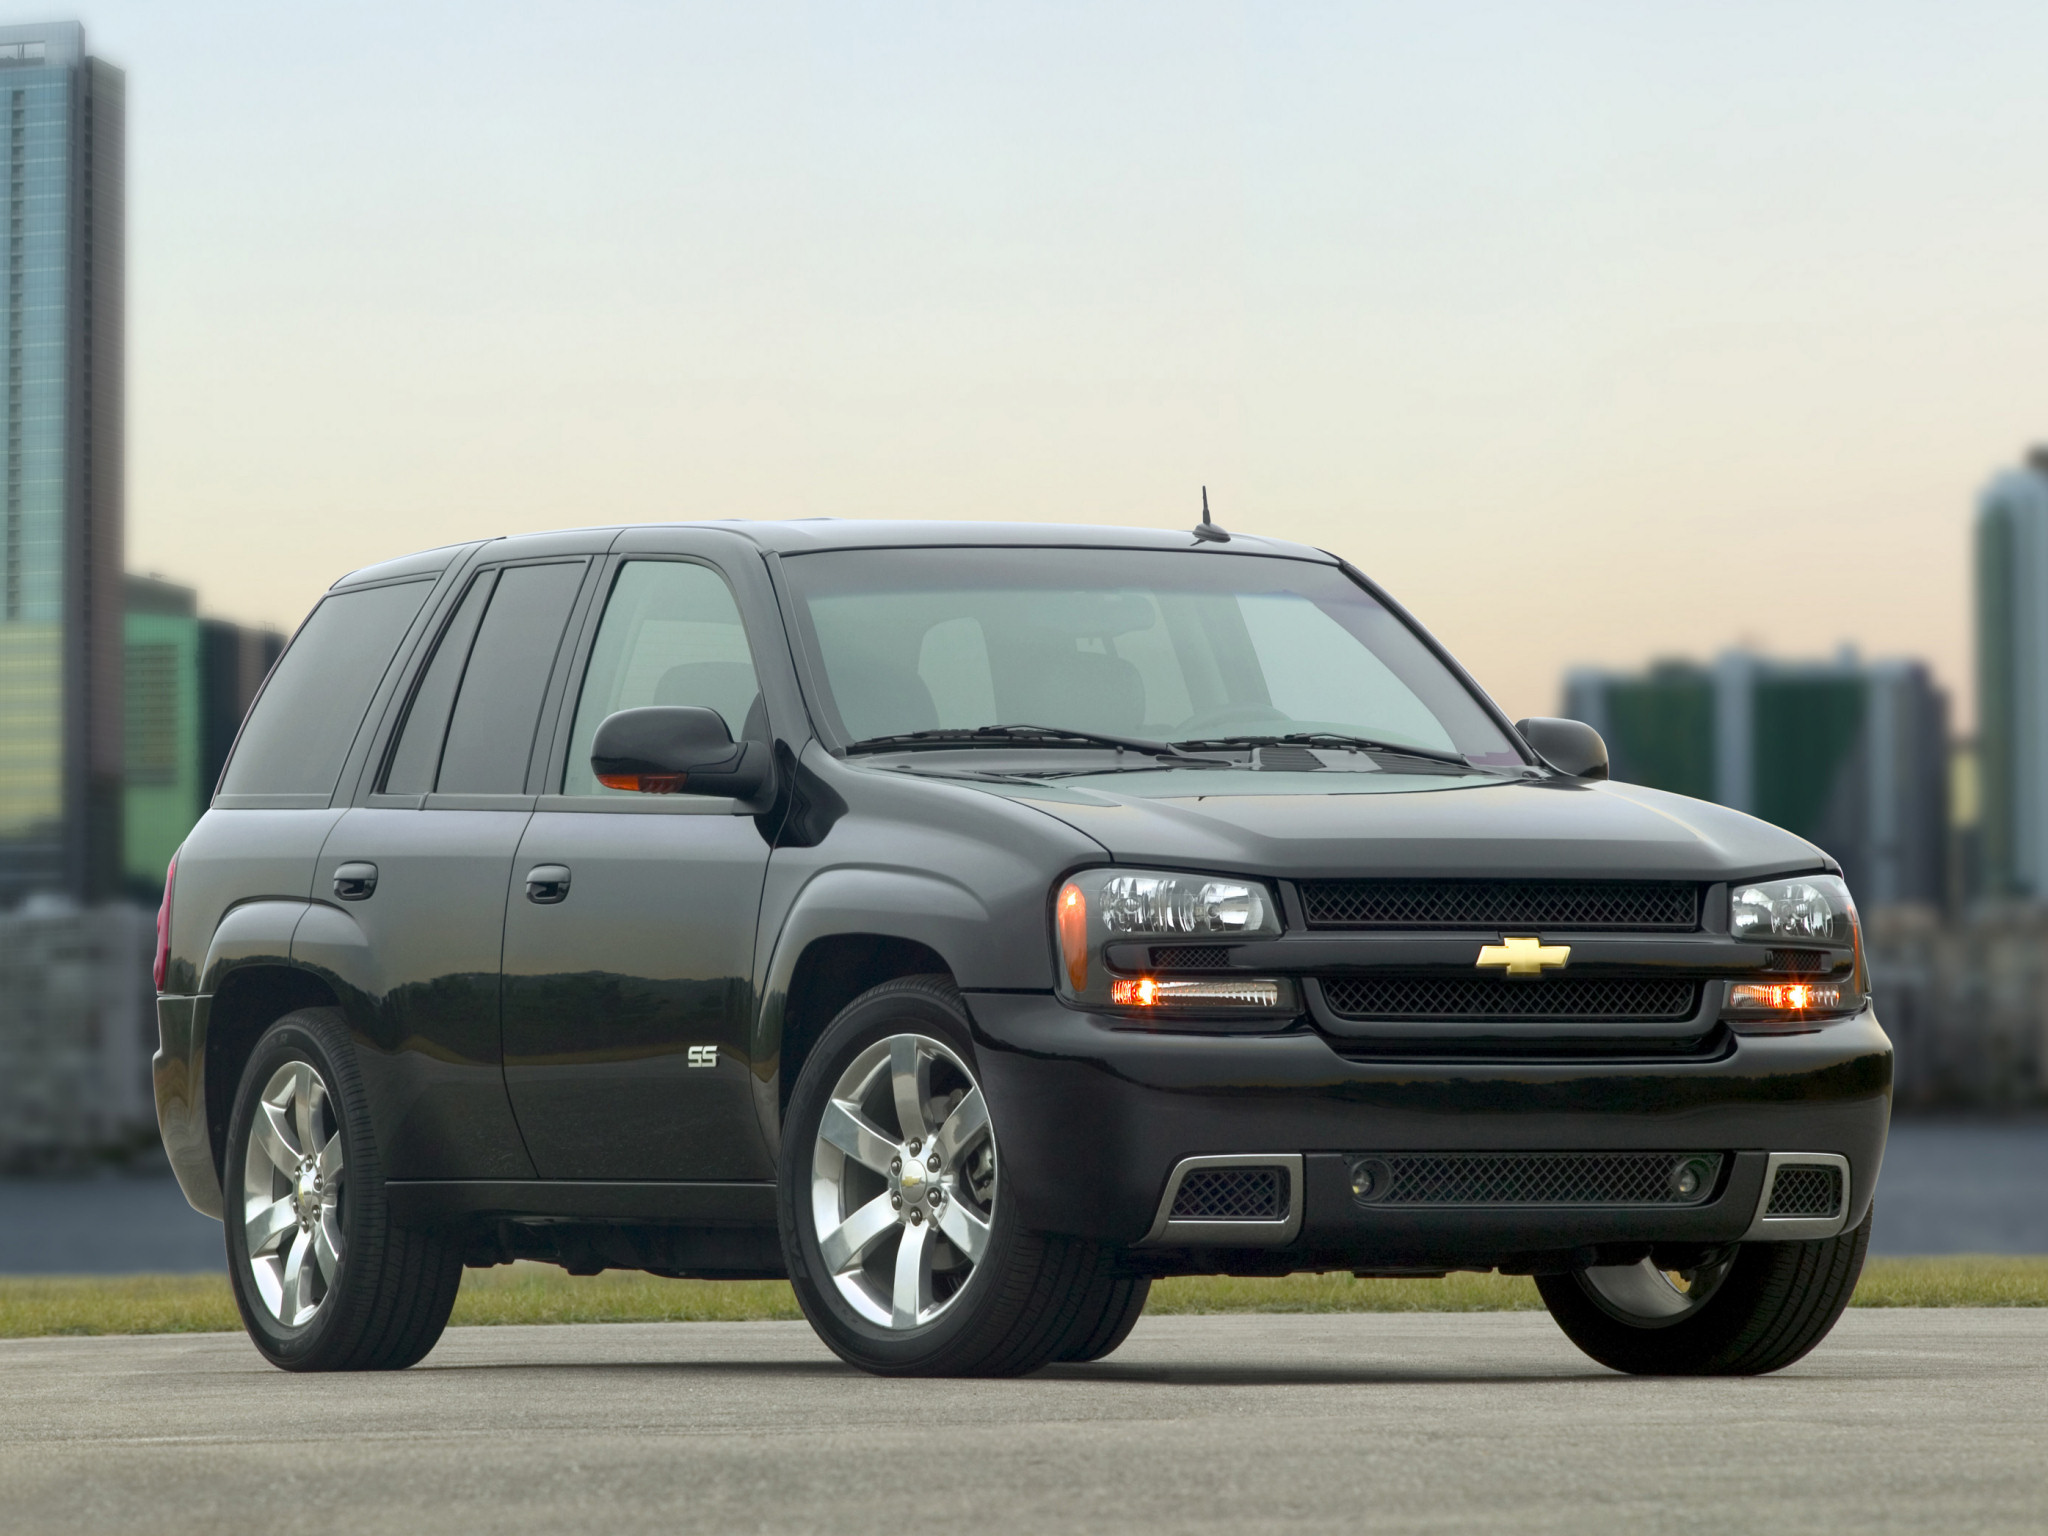 Chevrolet TrailBlazer 2008 #7